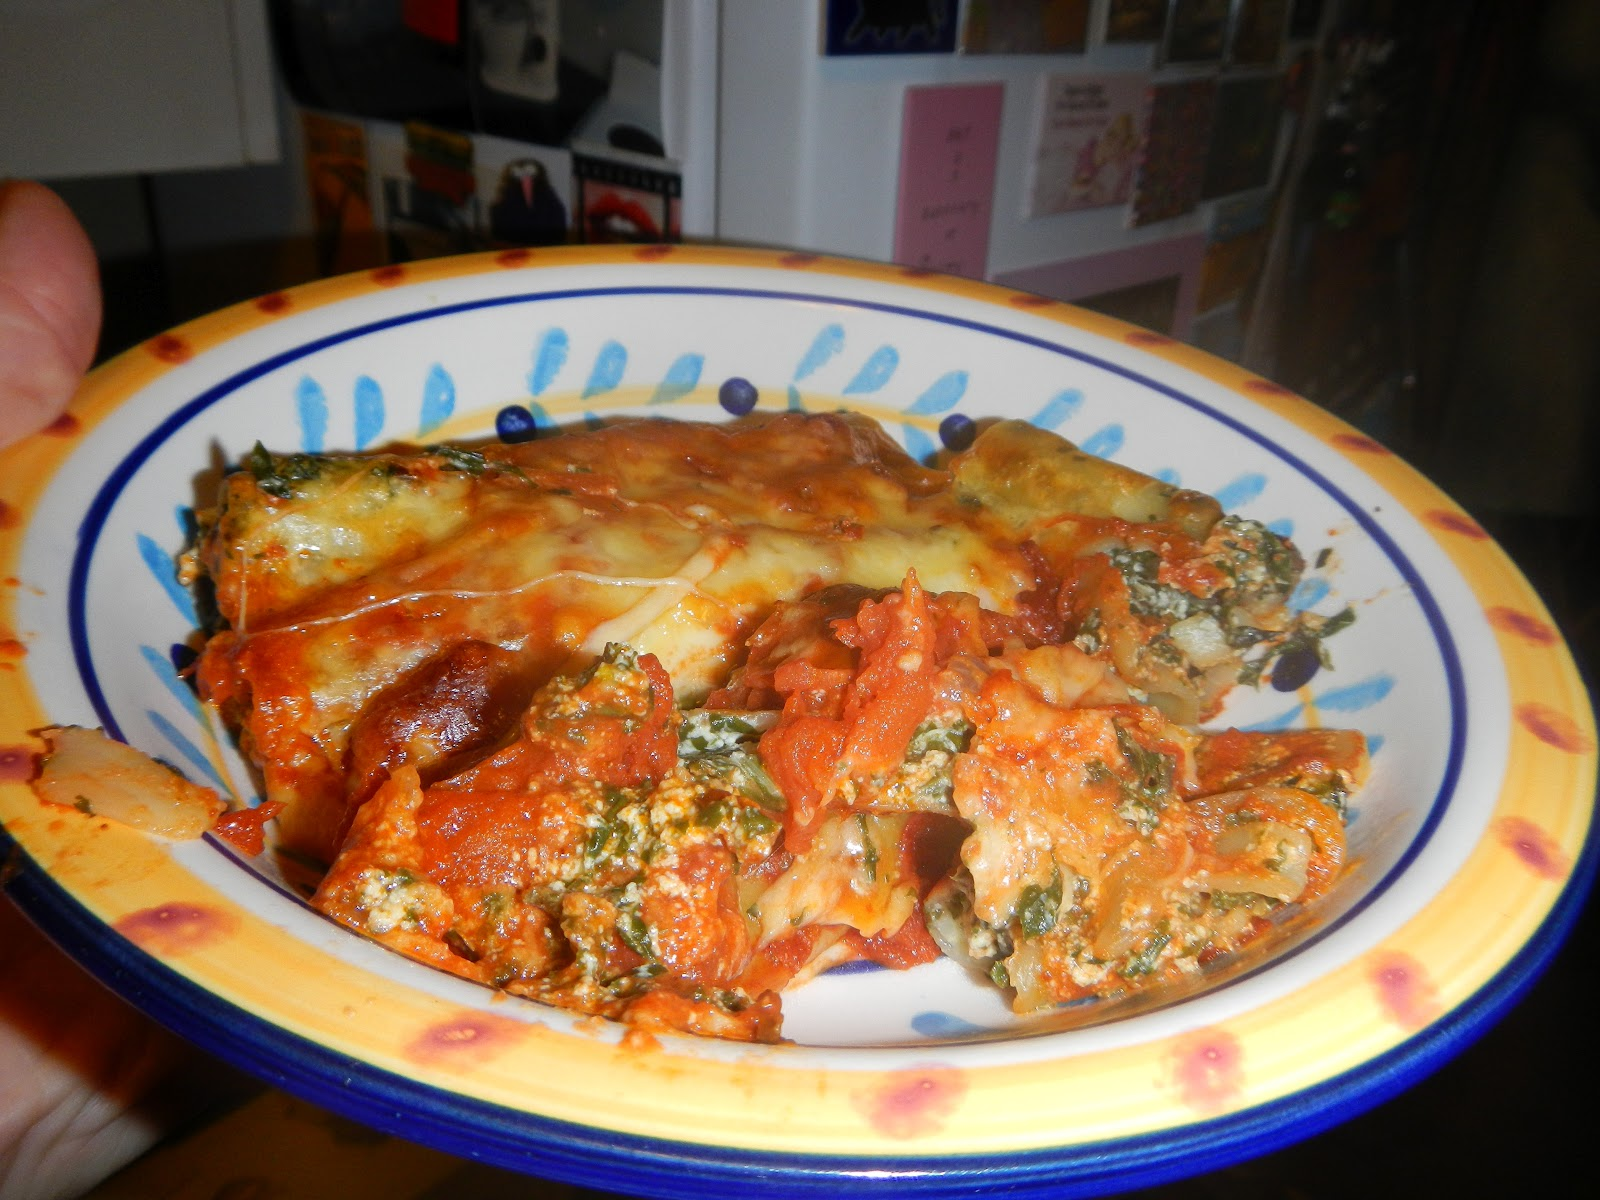 vegerama: Spinach and ricotta cannelloni